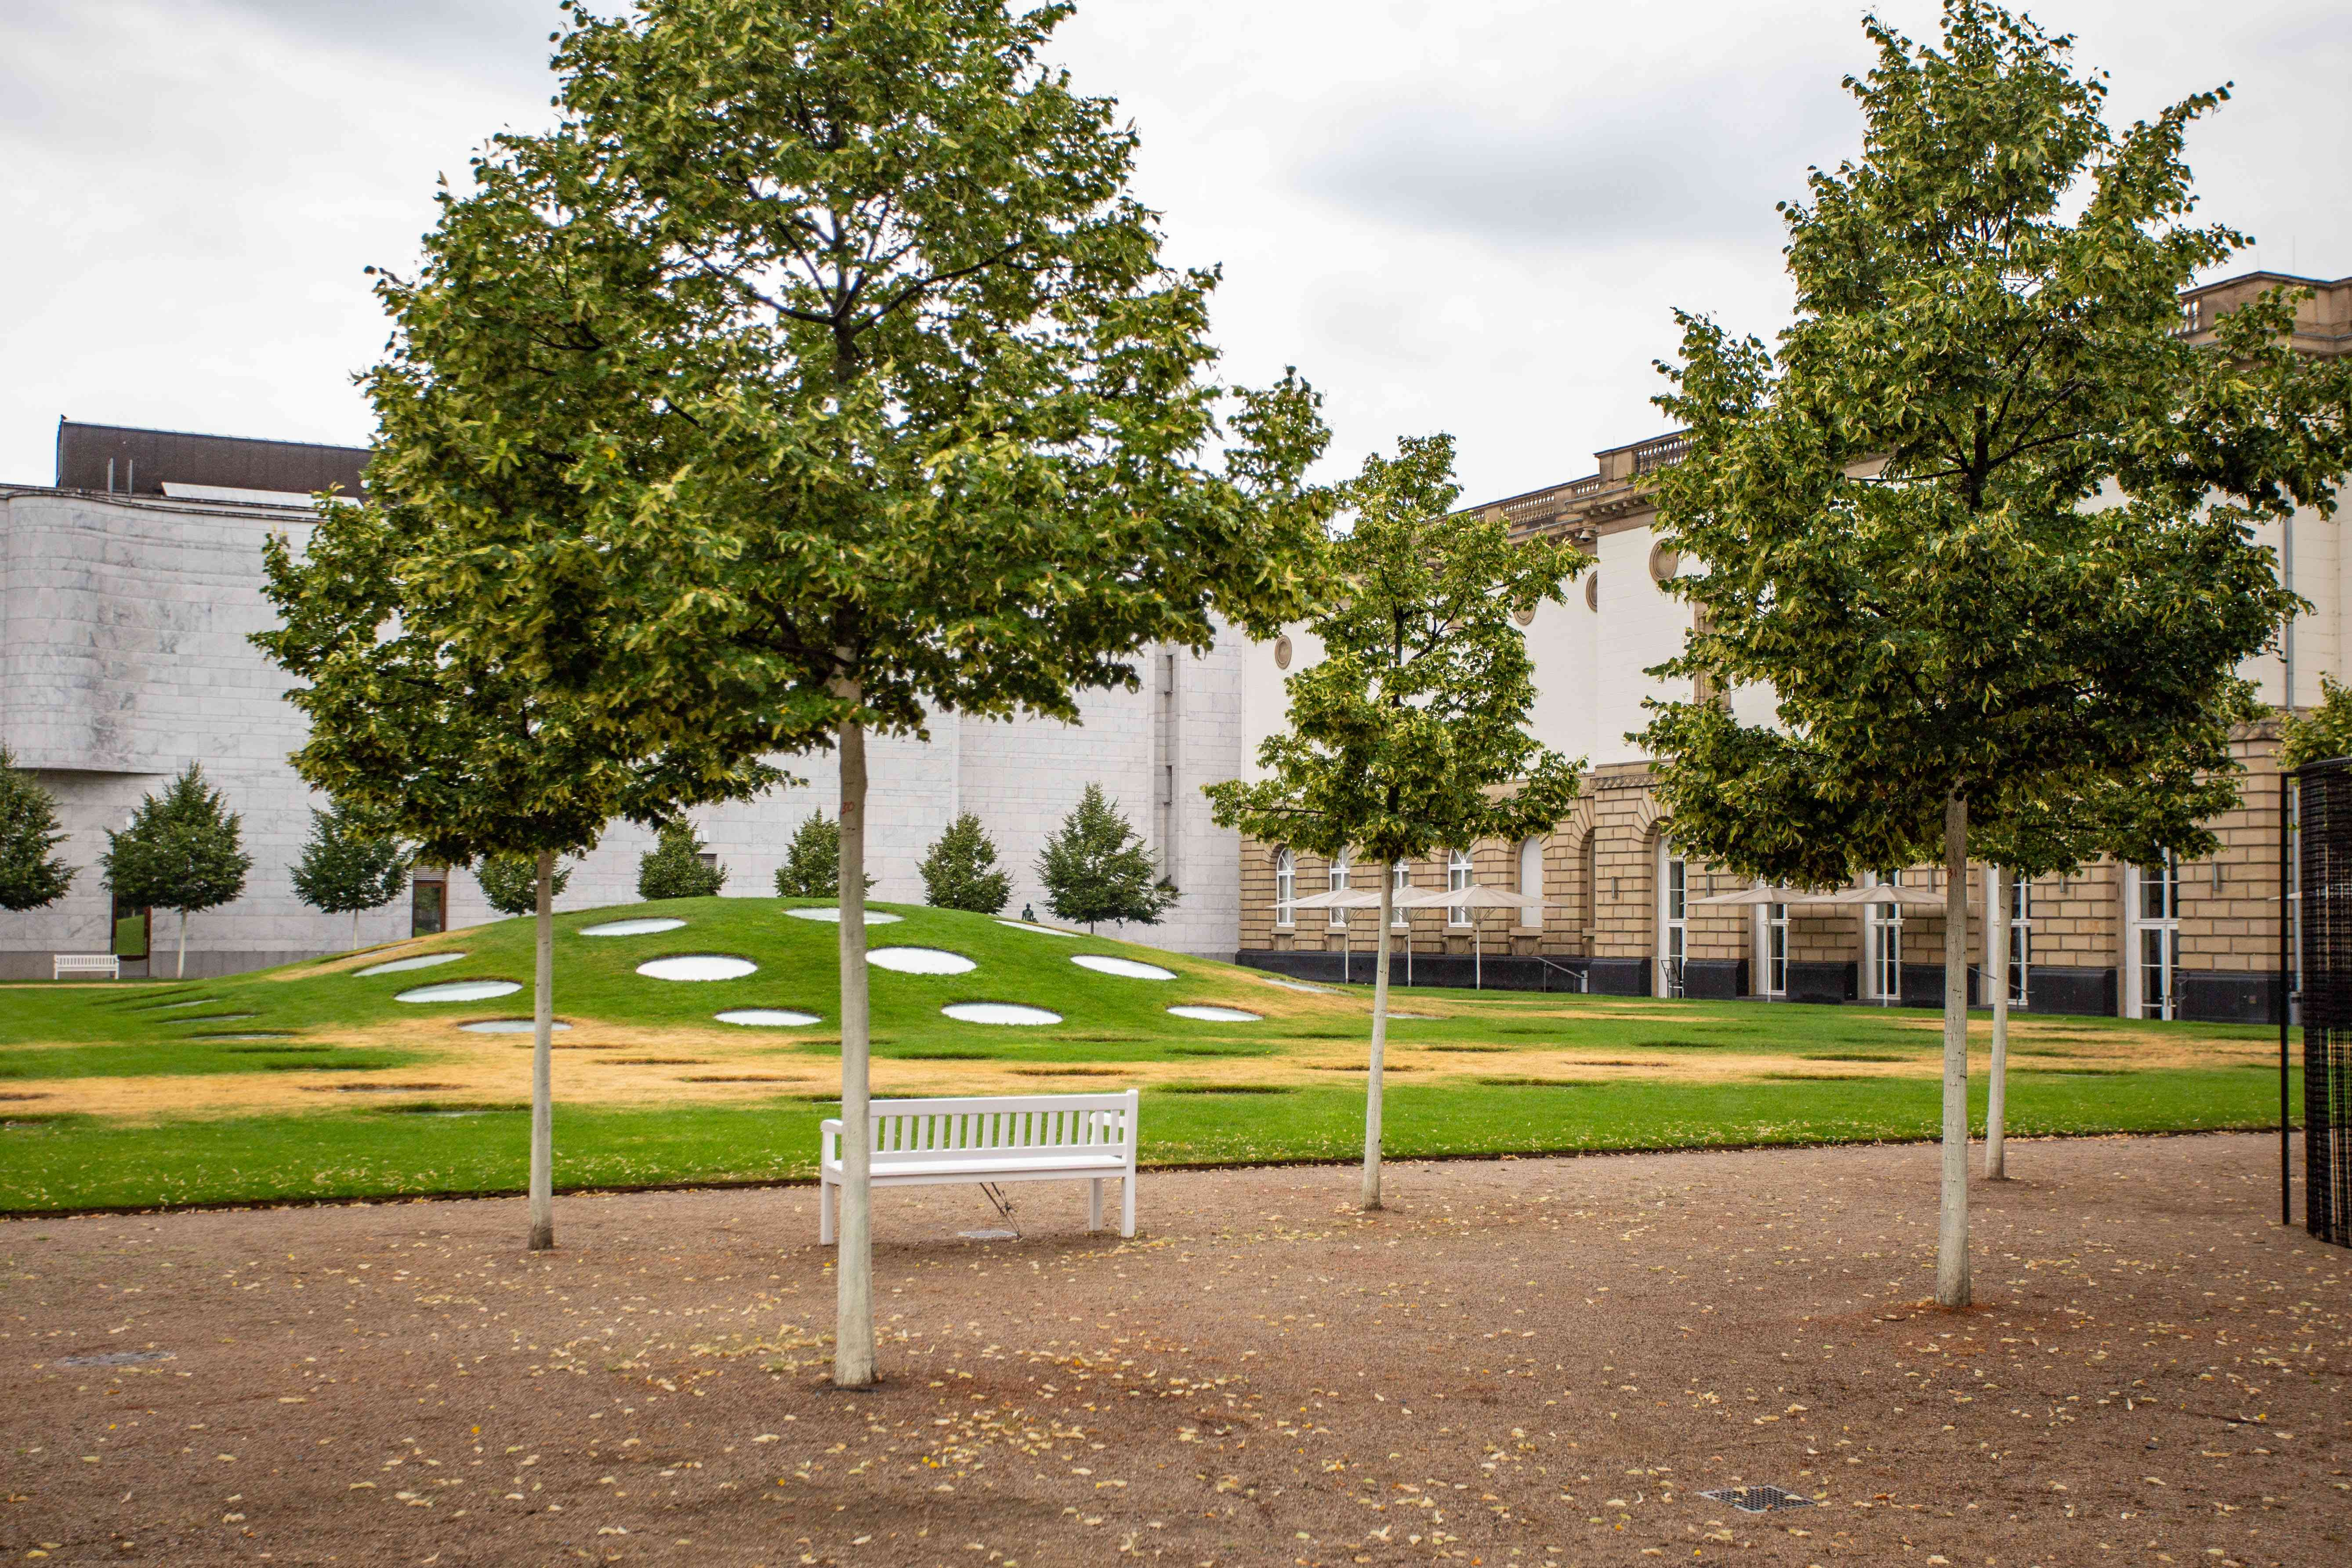 A courtyard with environmental art at Stadel Museum